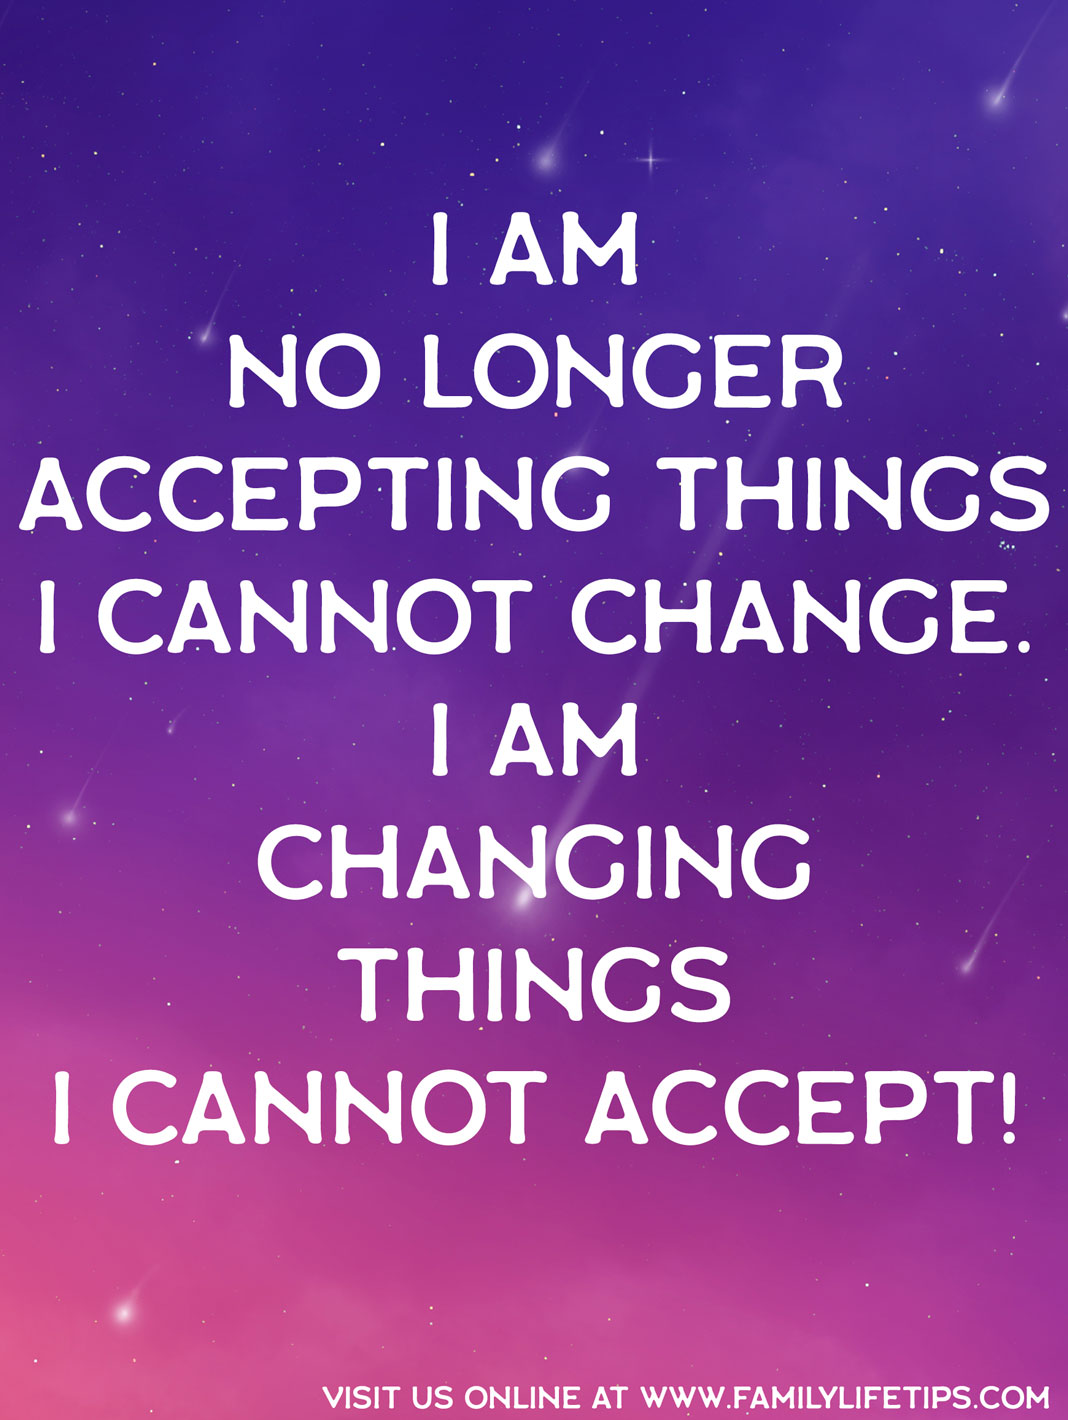 Inspirational Meme About Change: I am changing things I cannot accept | Family Life Tips Magazine